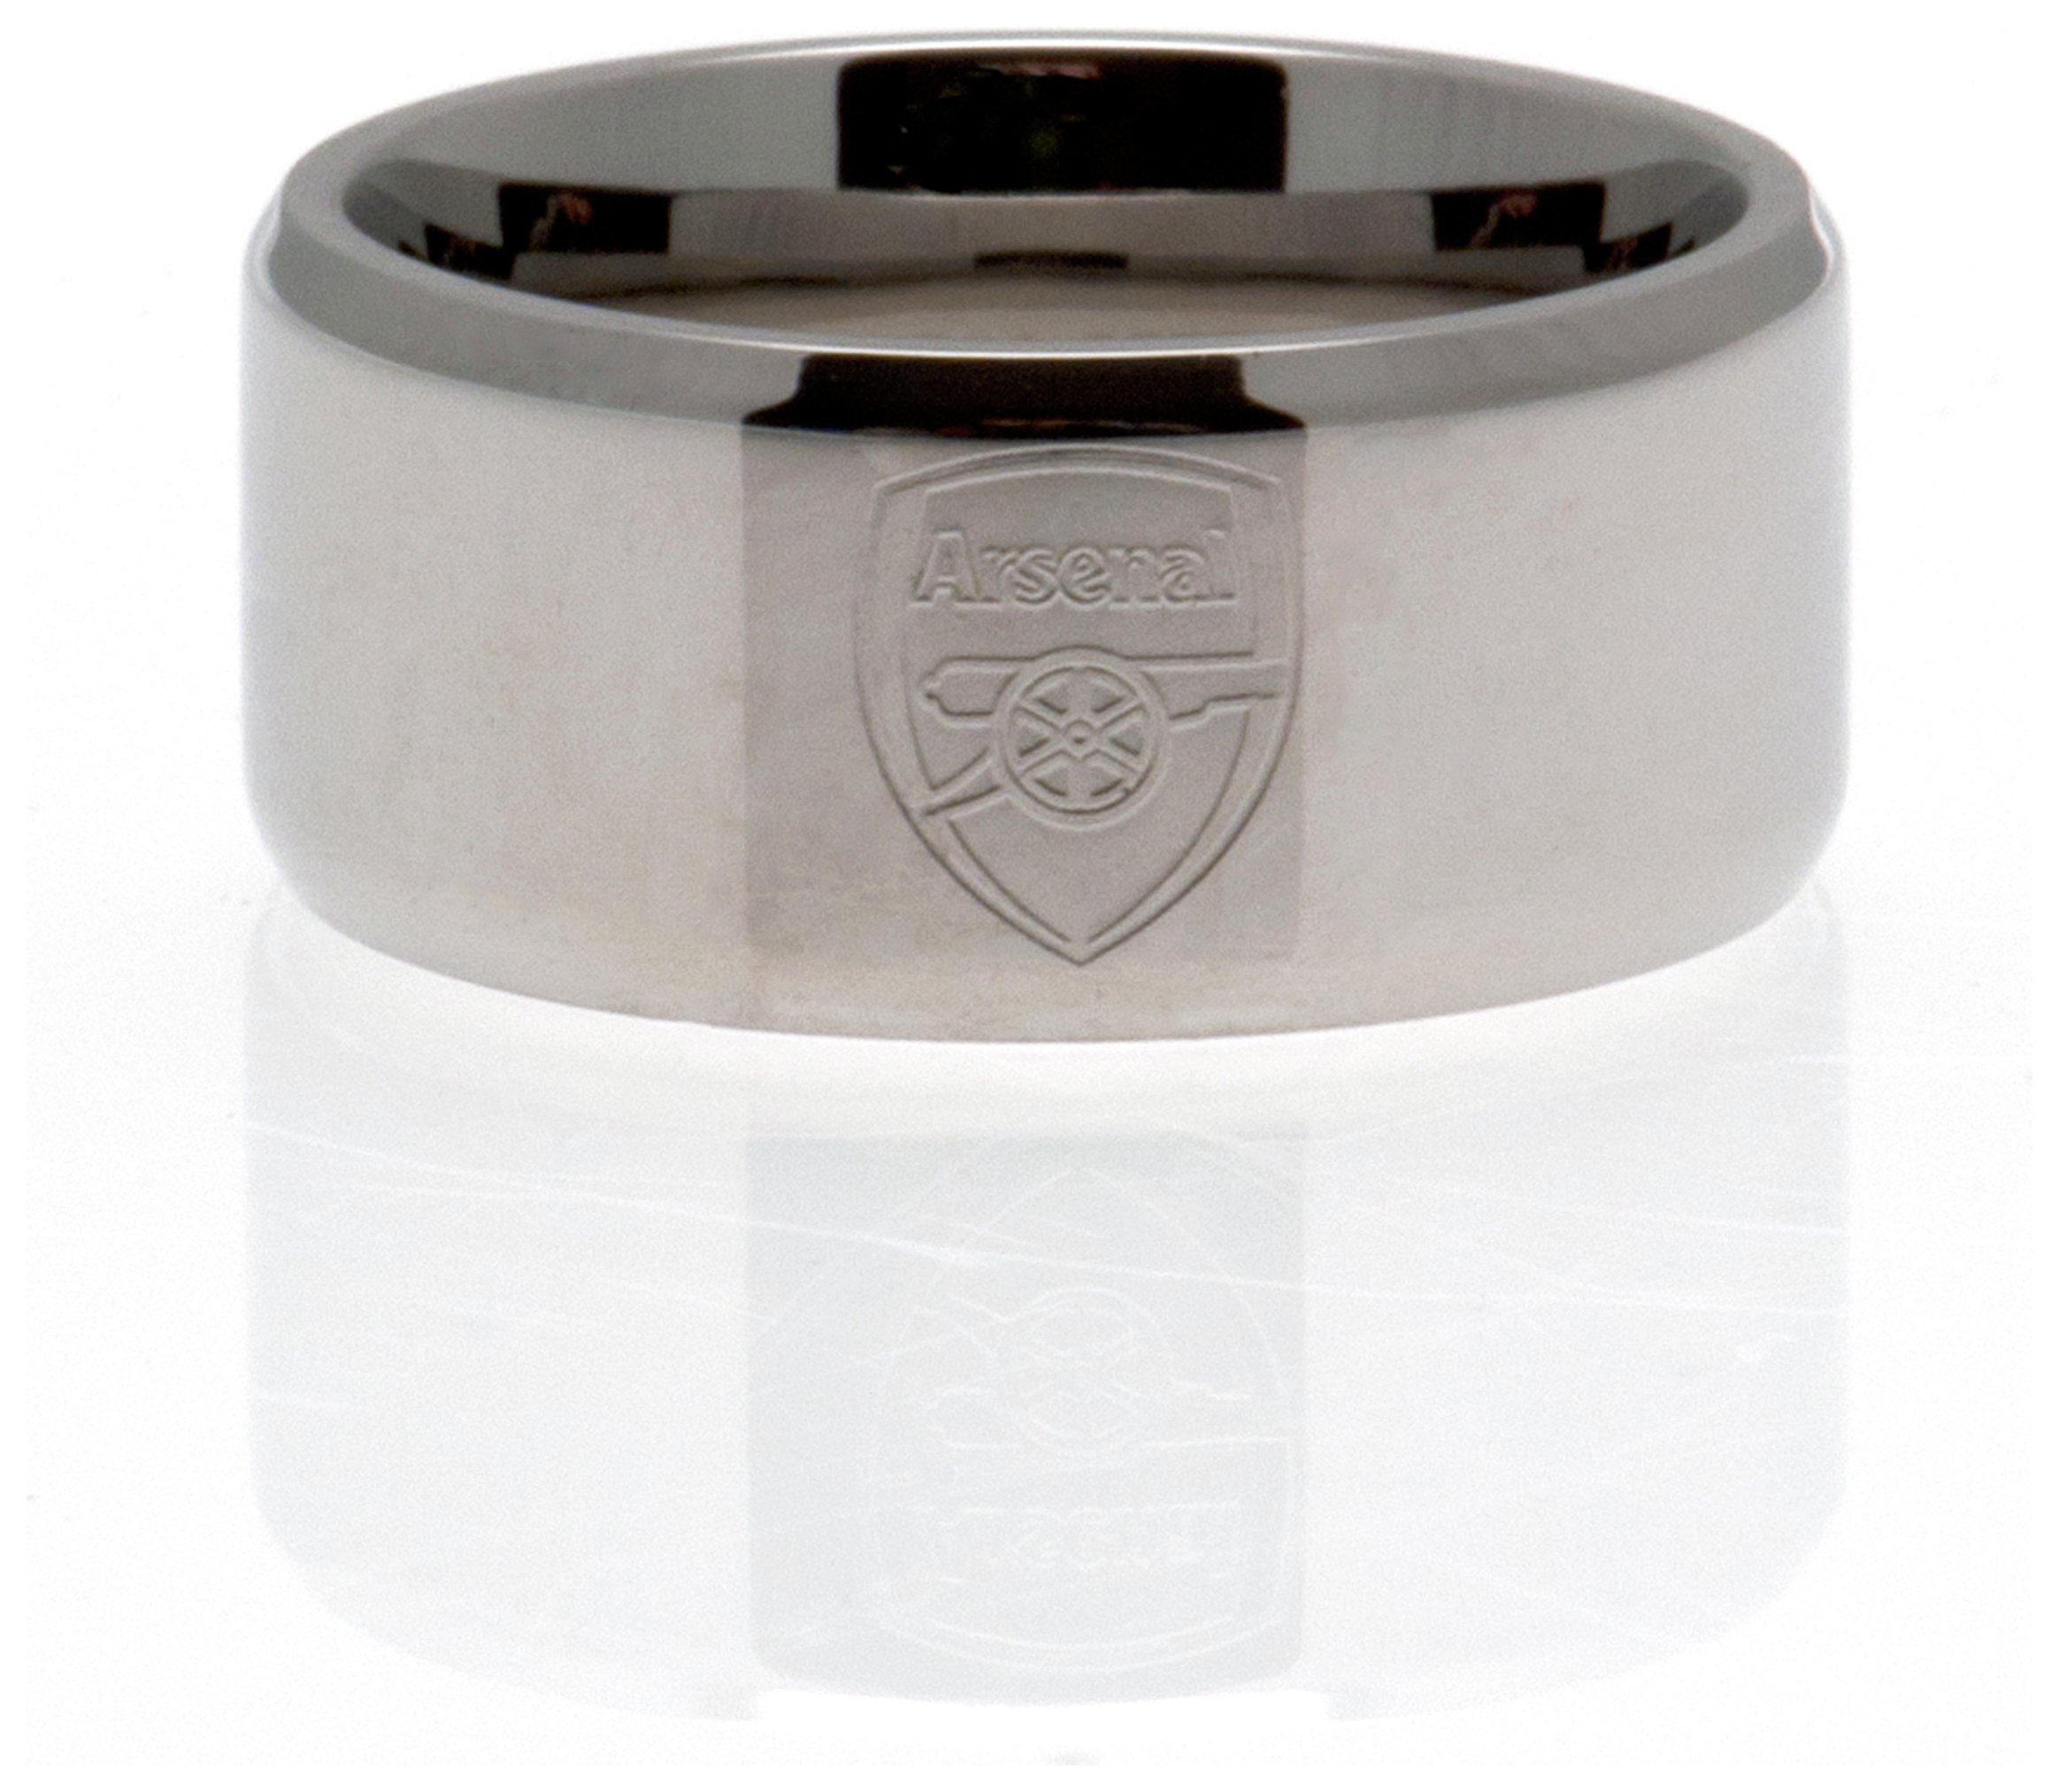 Image of Stainless Steel Arsenal Ring - Size R